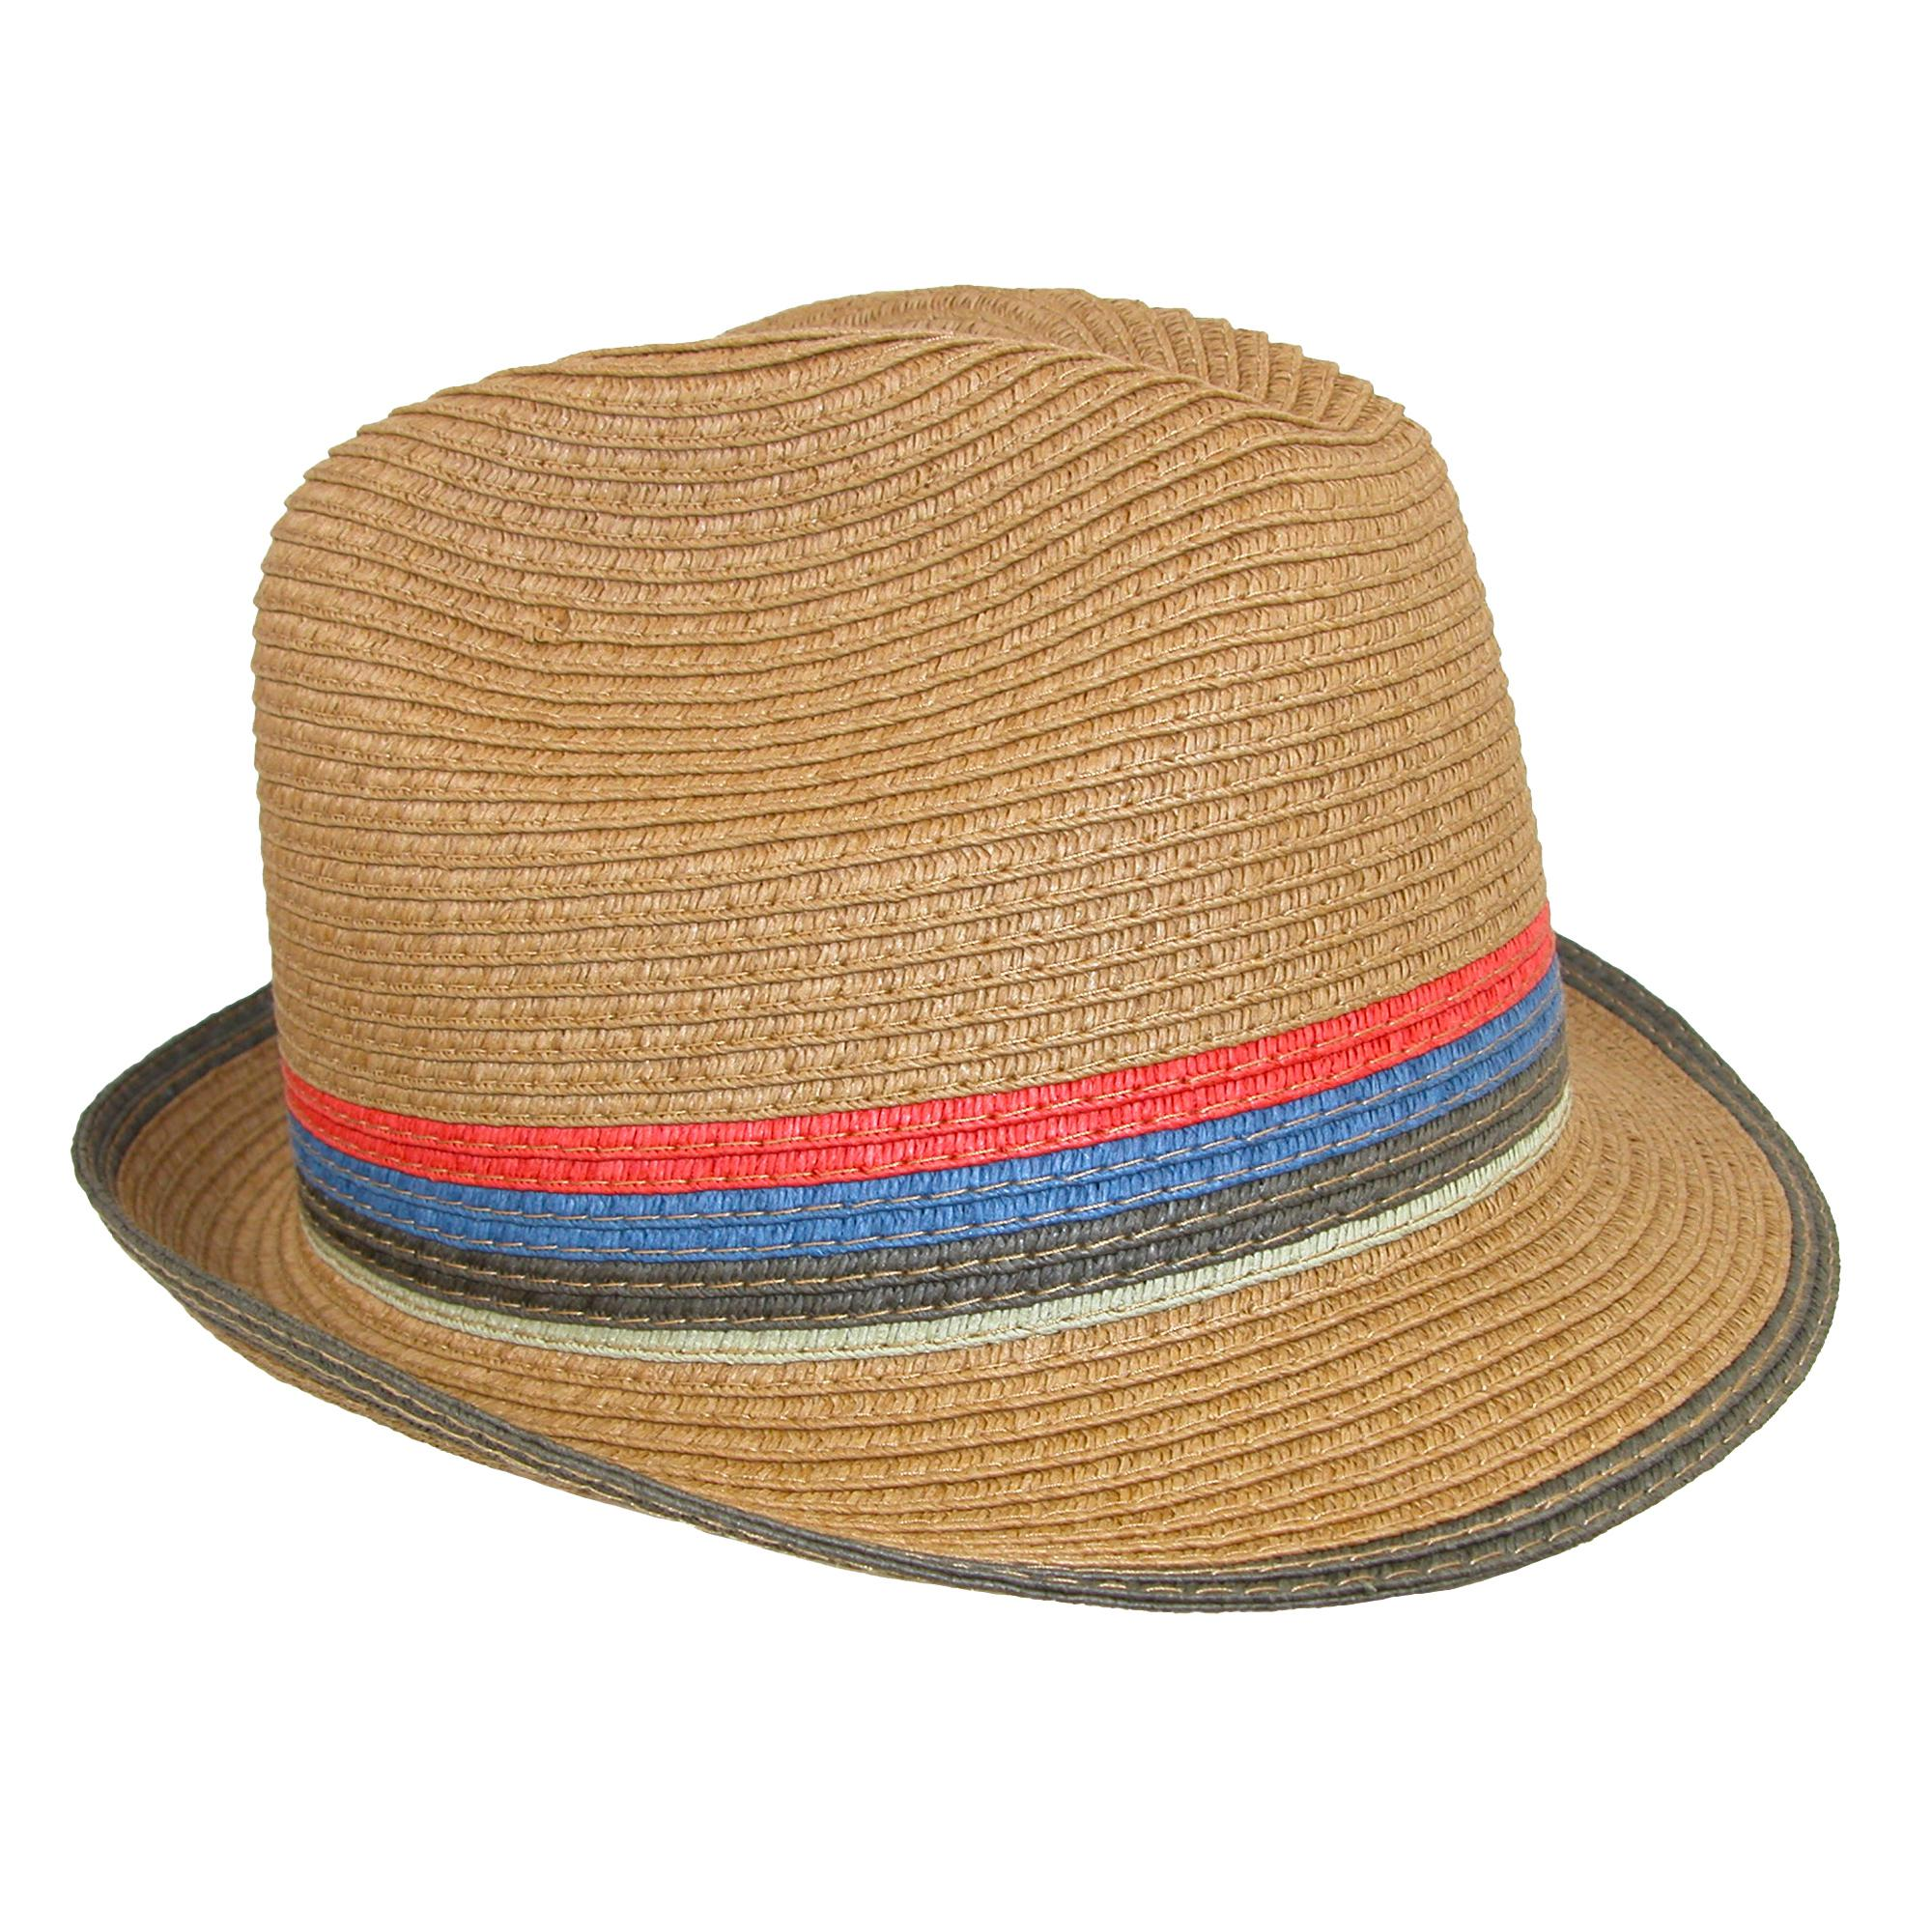 Broner Hats: New Broner Men's Paper Braid Fedora Hat With Colorful